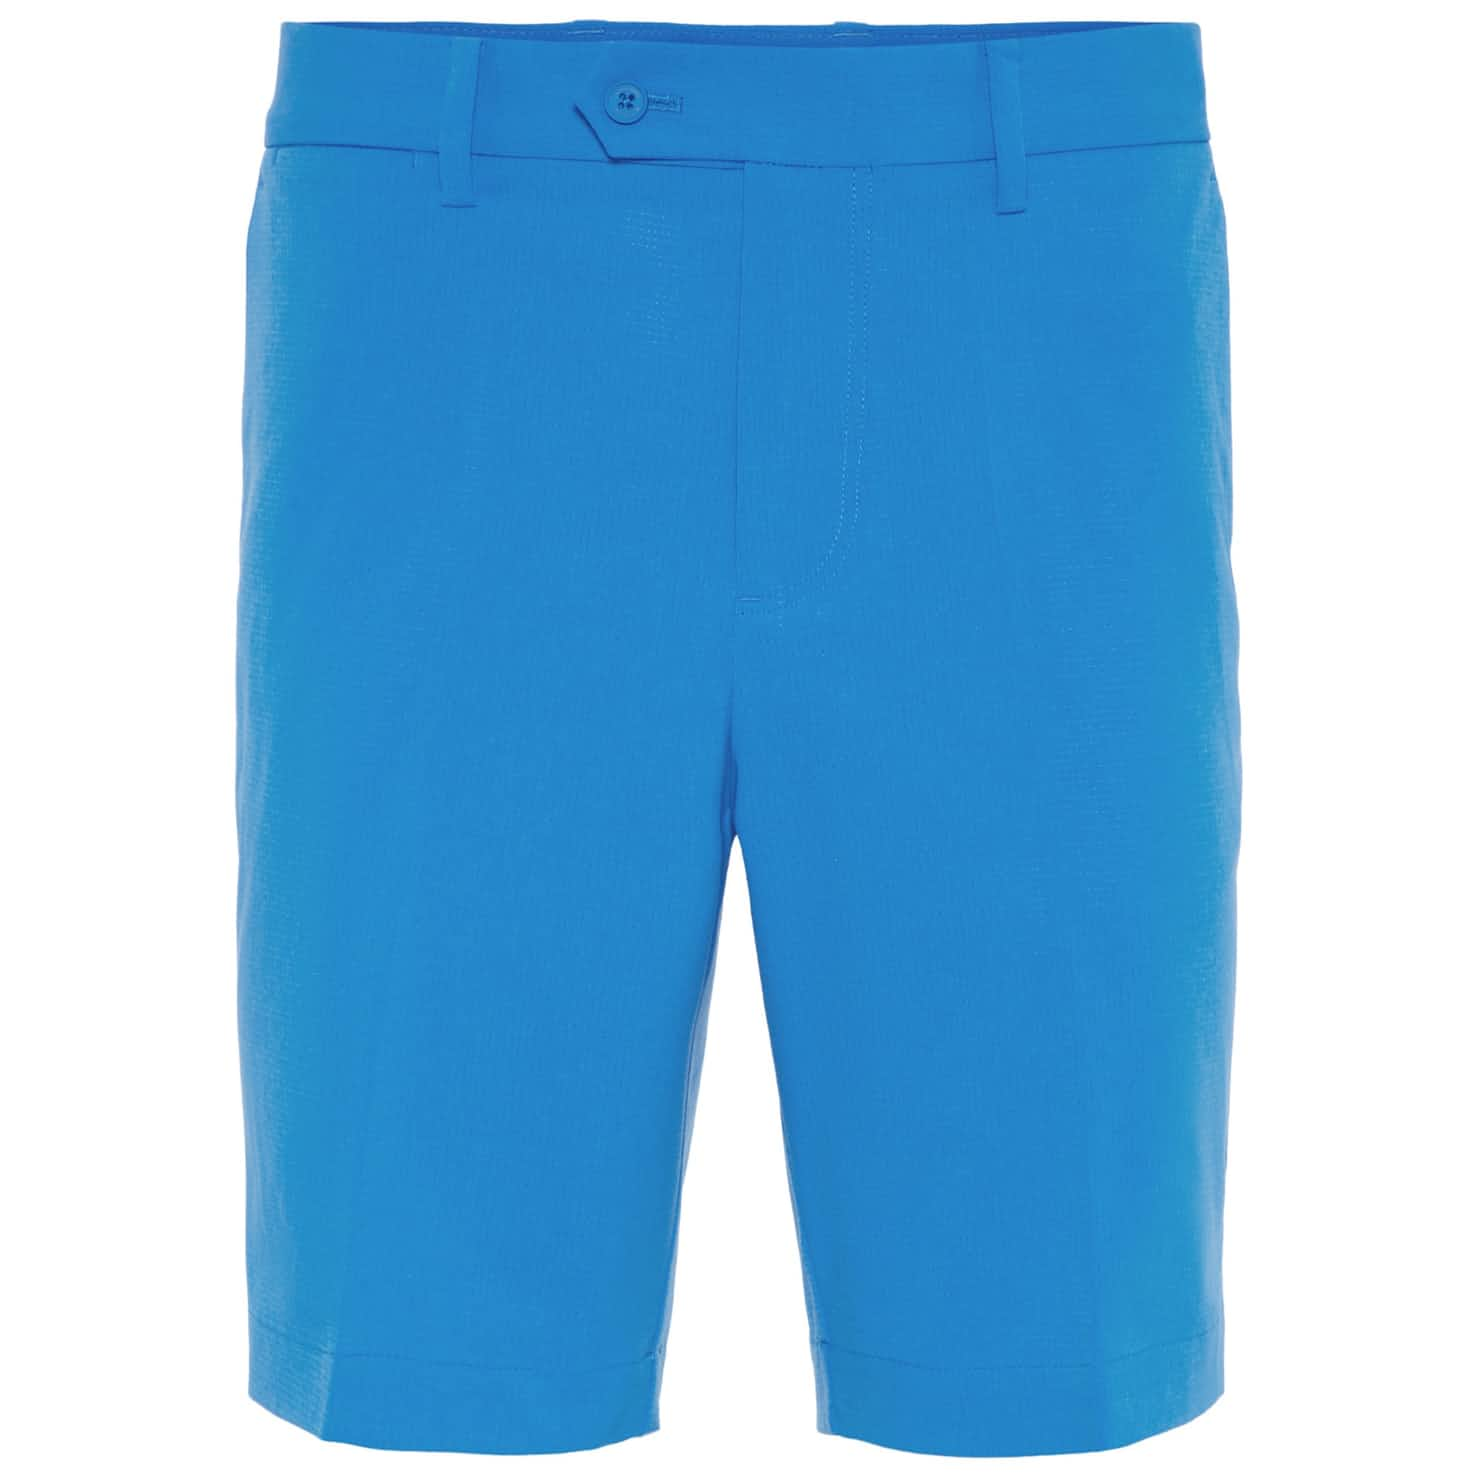 Vent High Vent Shorts True Blue - SS20